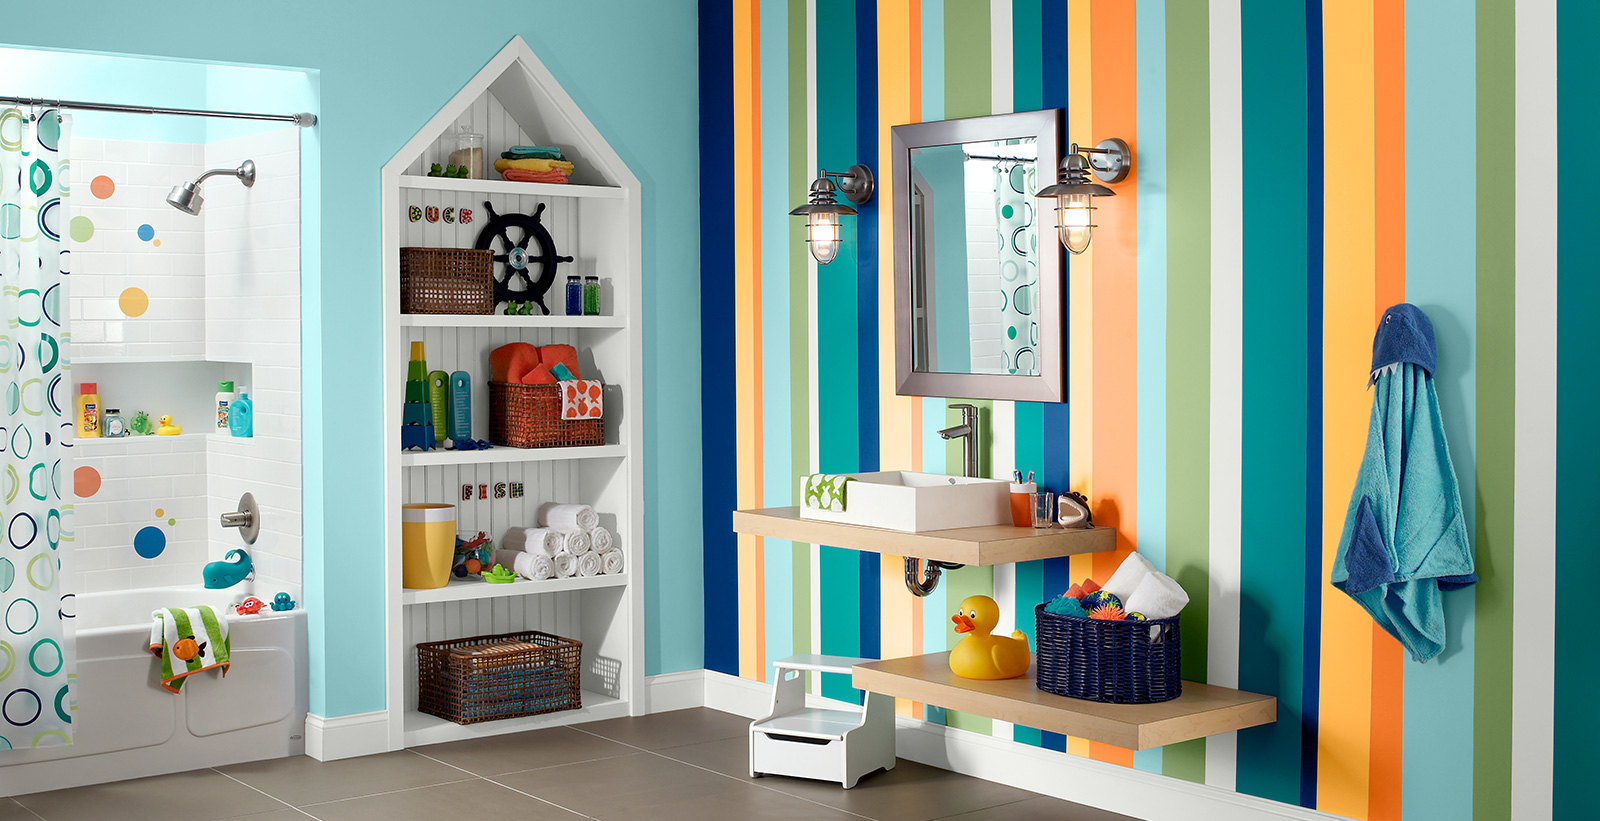 Eclectic styled youth bathroom with blue, yellow, orange and white striped wall, white trim, and coastal themed decoration.